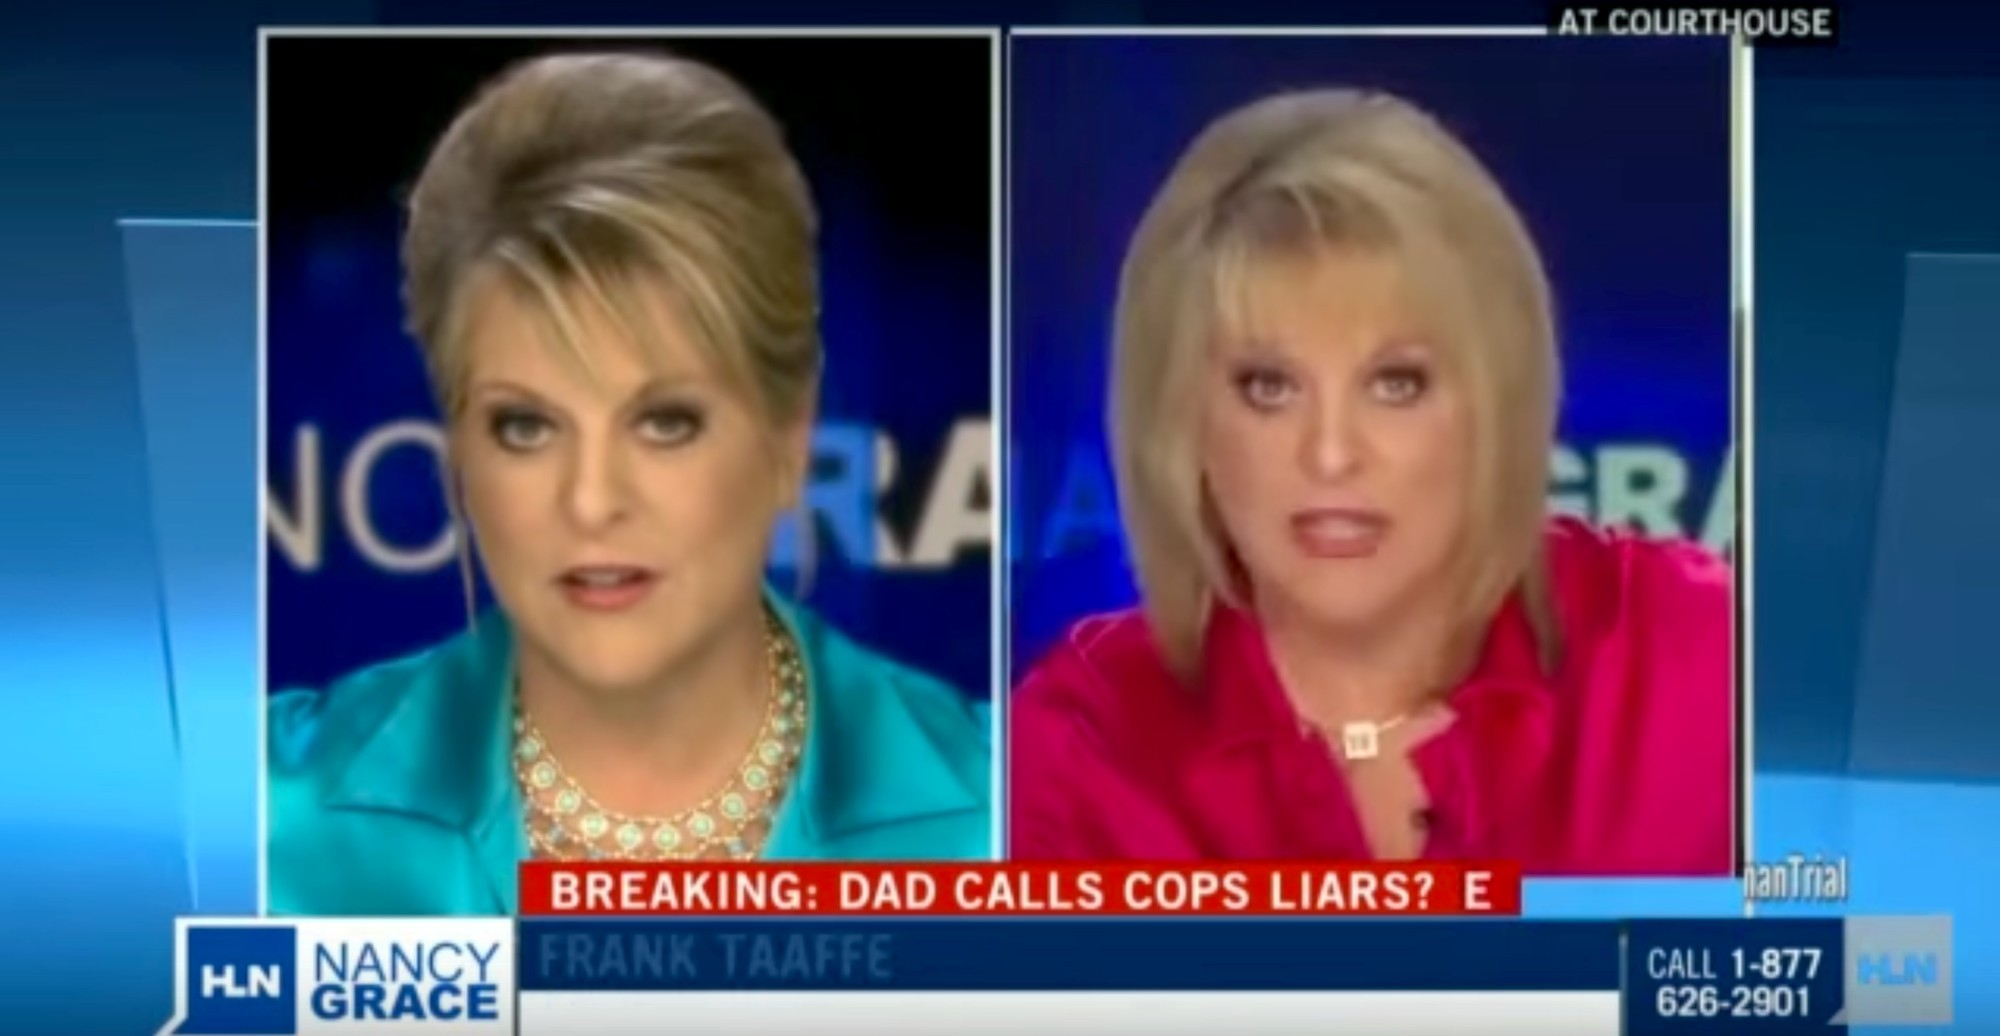 Watch: Nancy Grace Debates Nancy Grace About What Marijuana Does To People